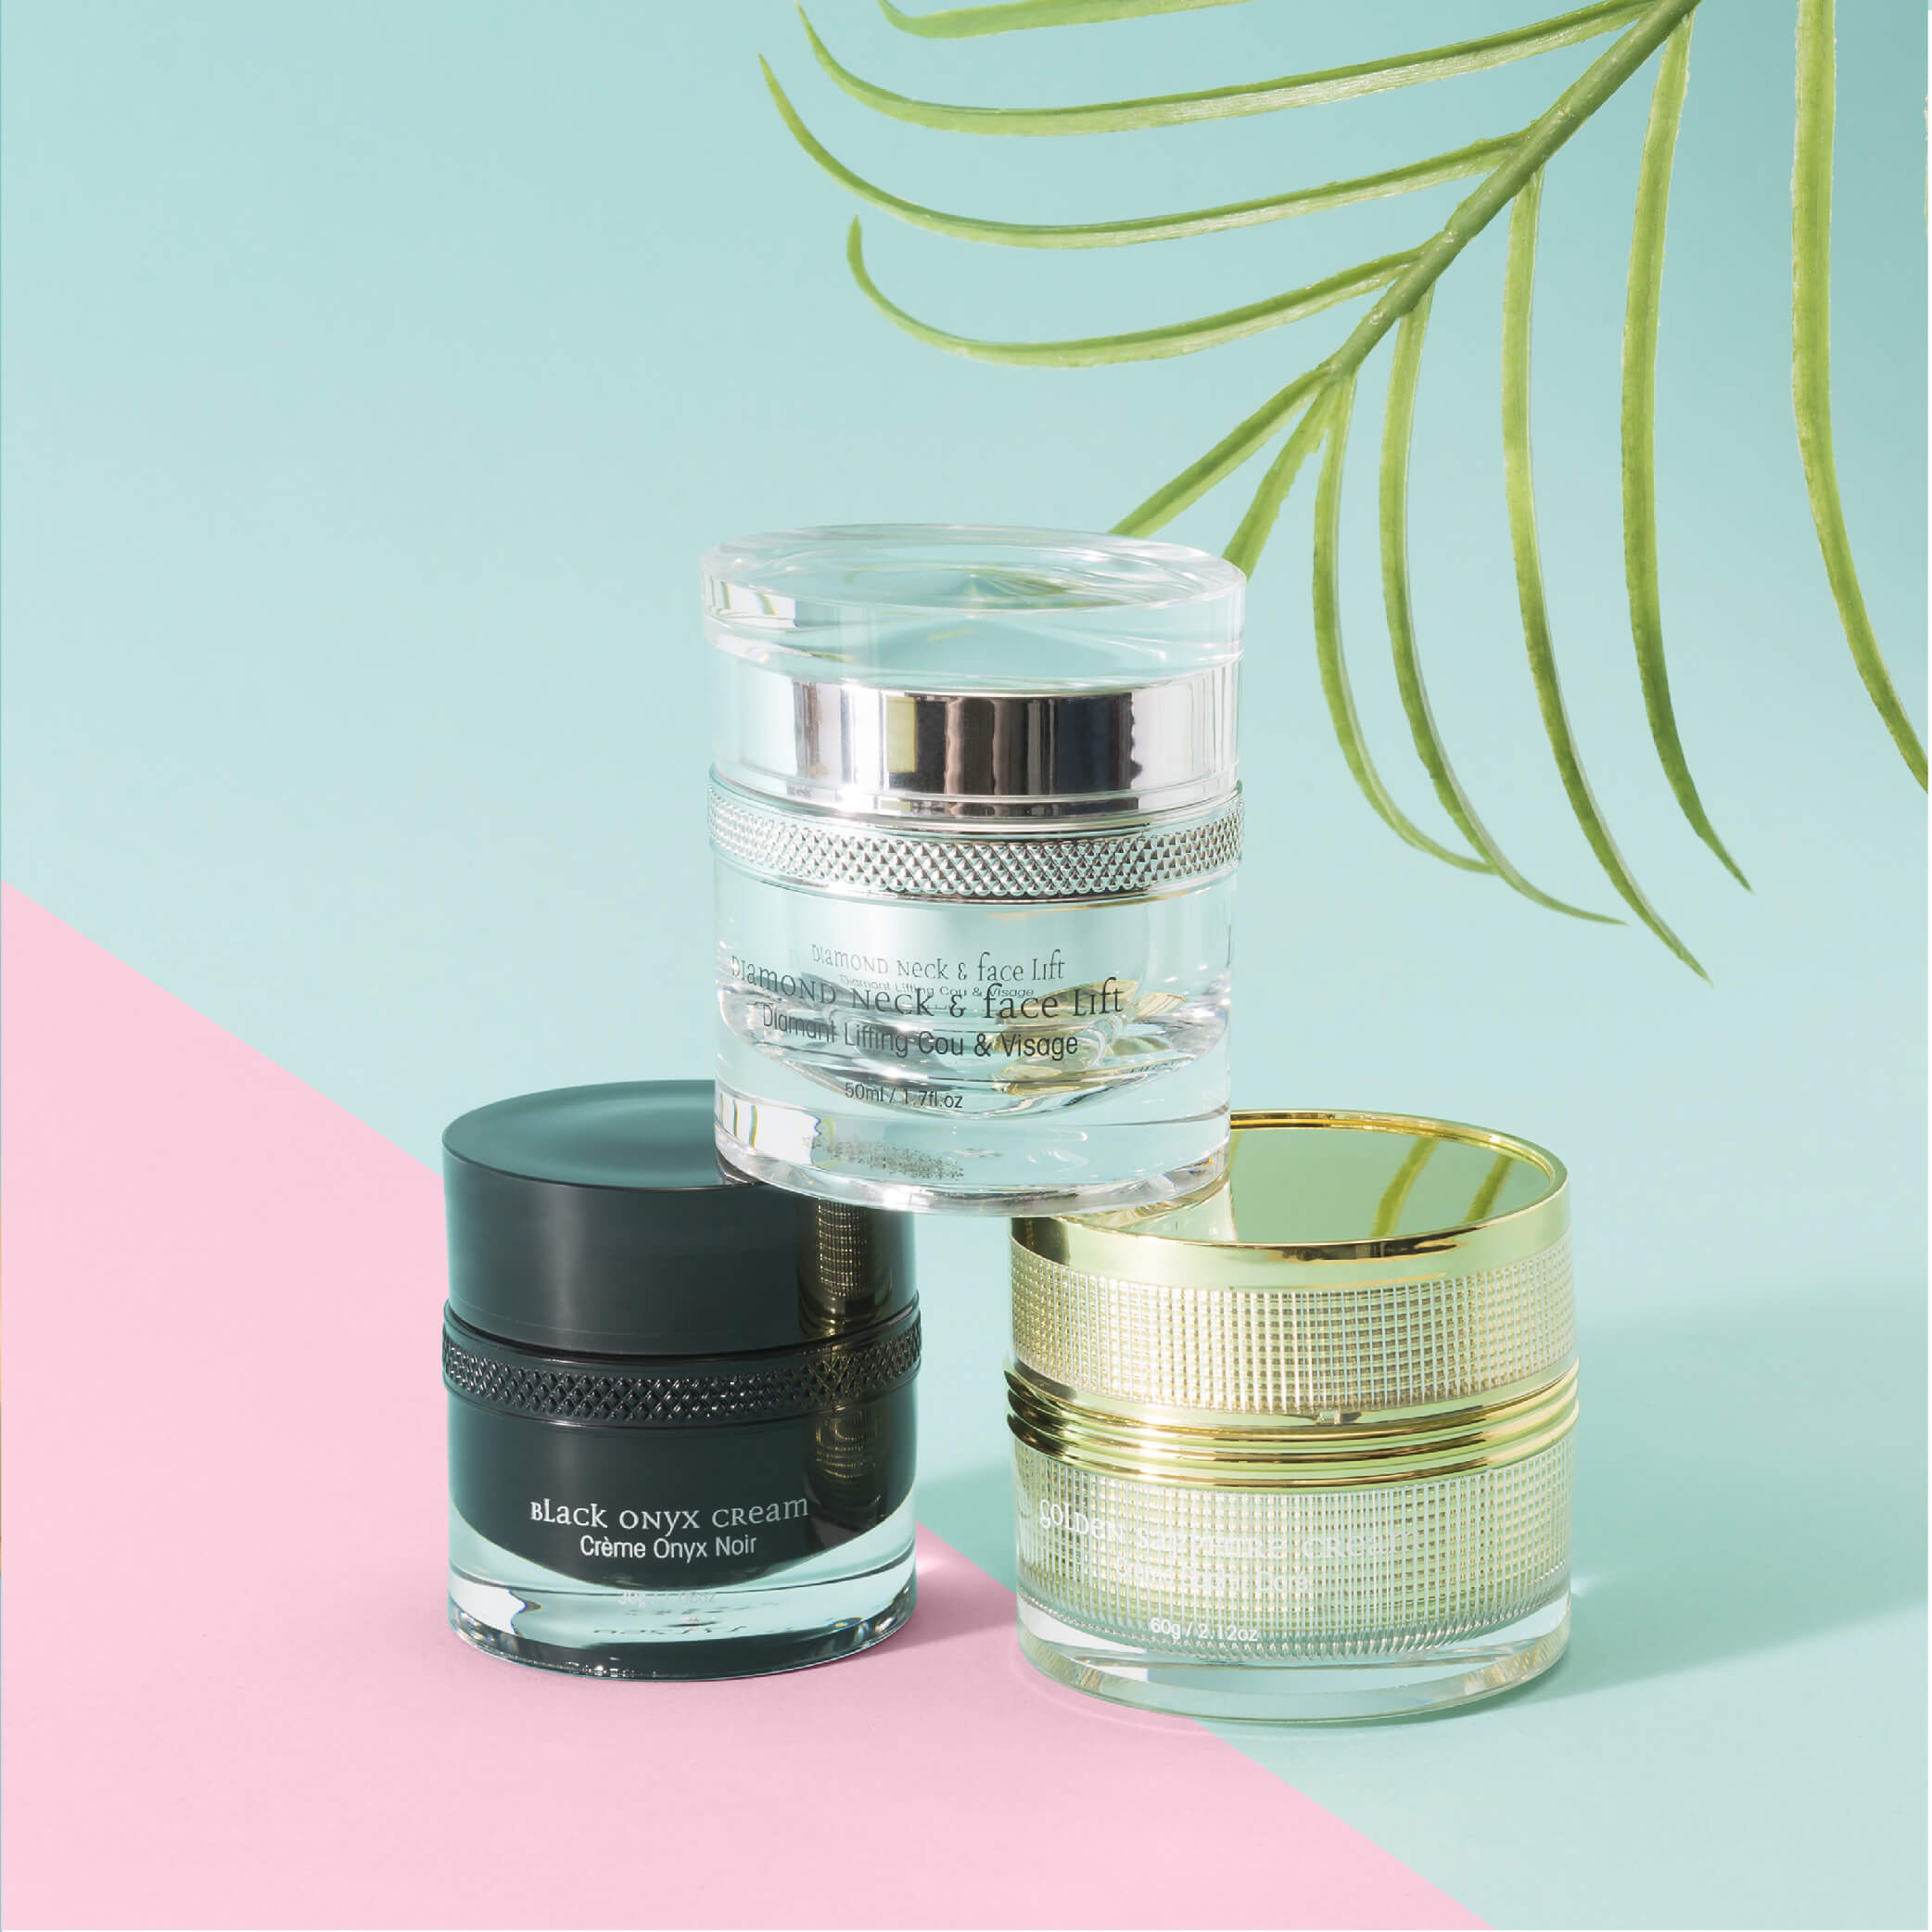 Lionesse skincare products